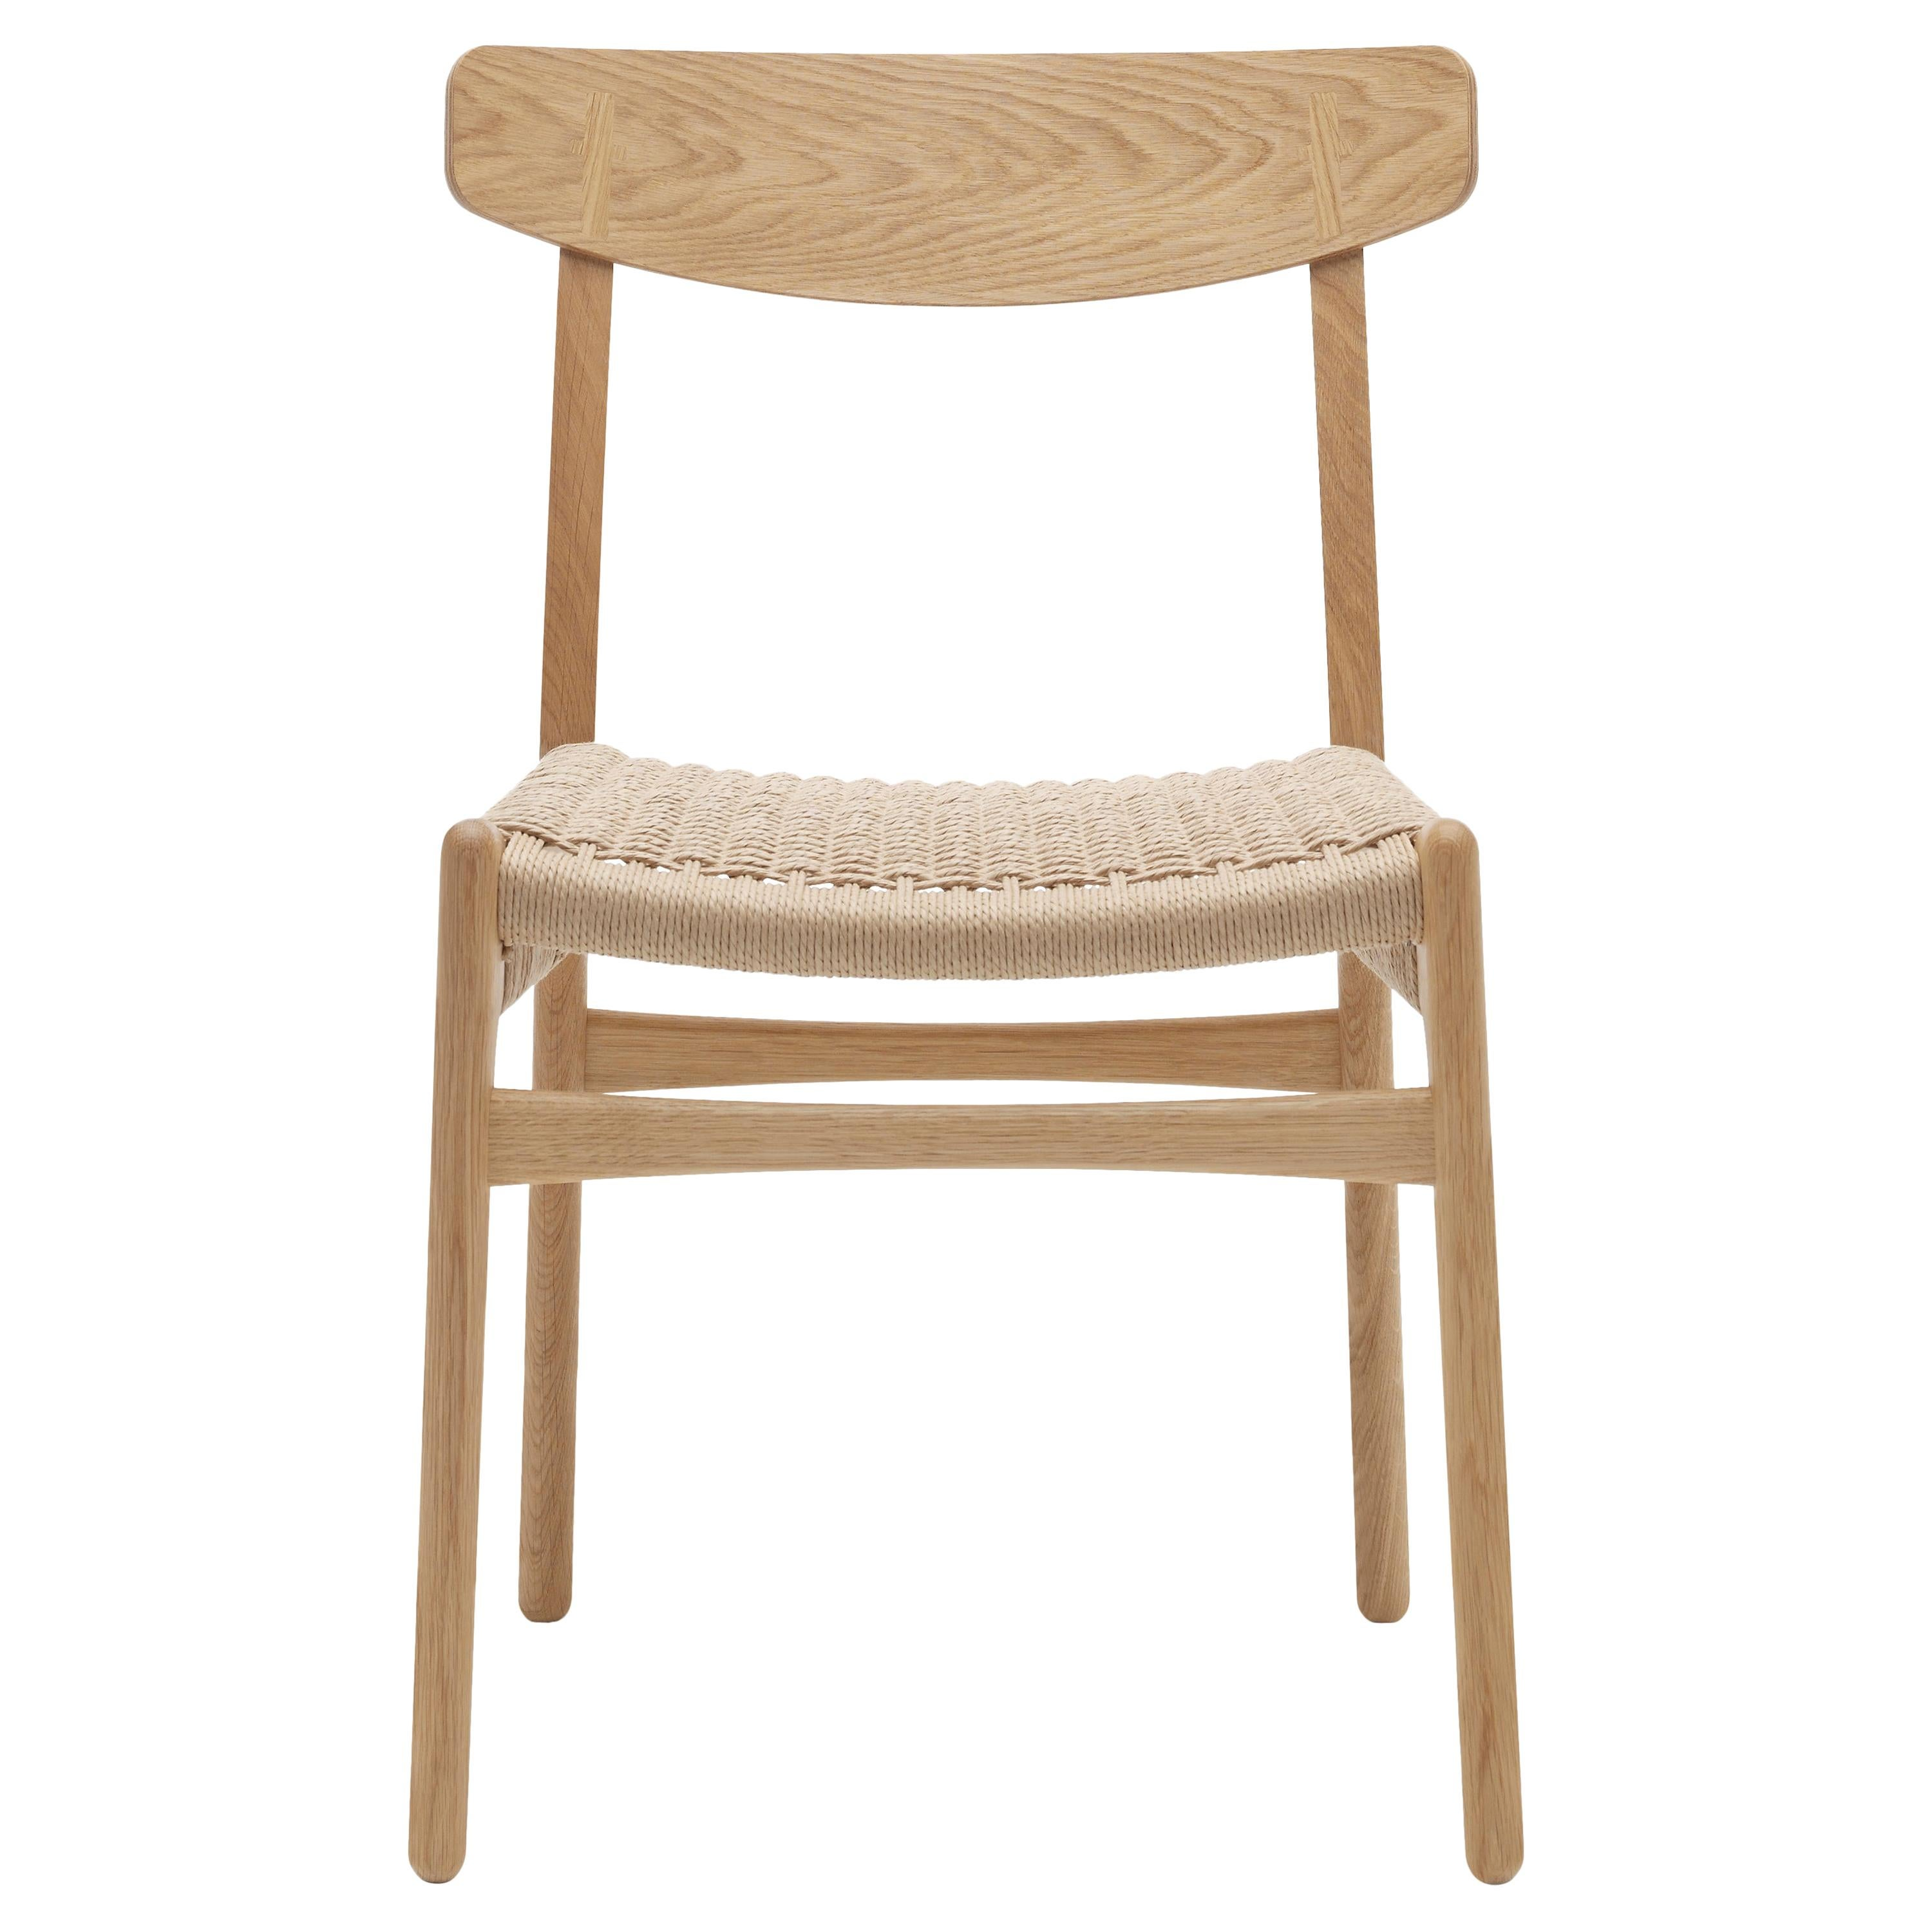 CH23 Dining Chair in Wood Finishes with Natural Papercord Seat by Hans J. Wegner